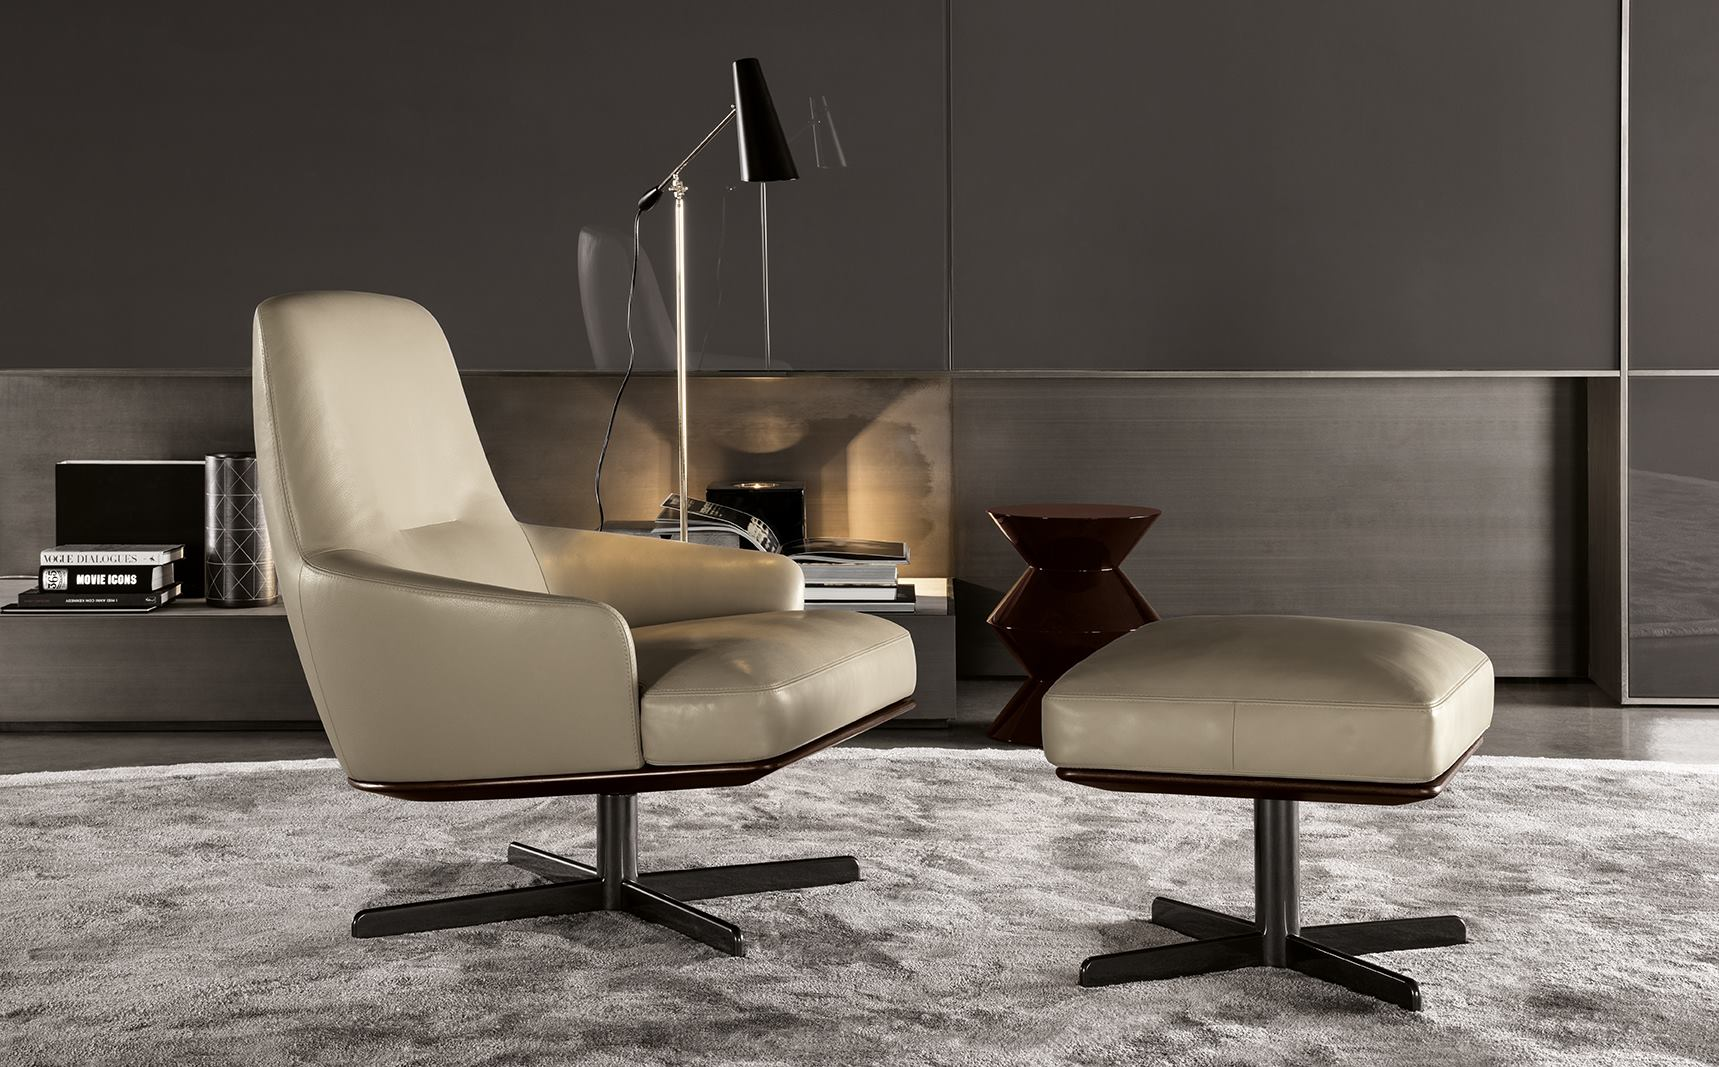 Minotti – Handwerkskunst made in Italy